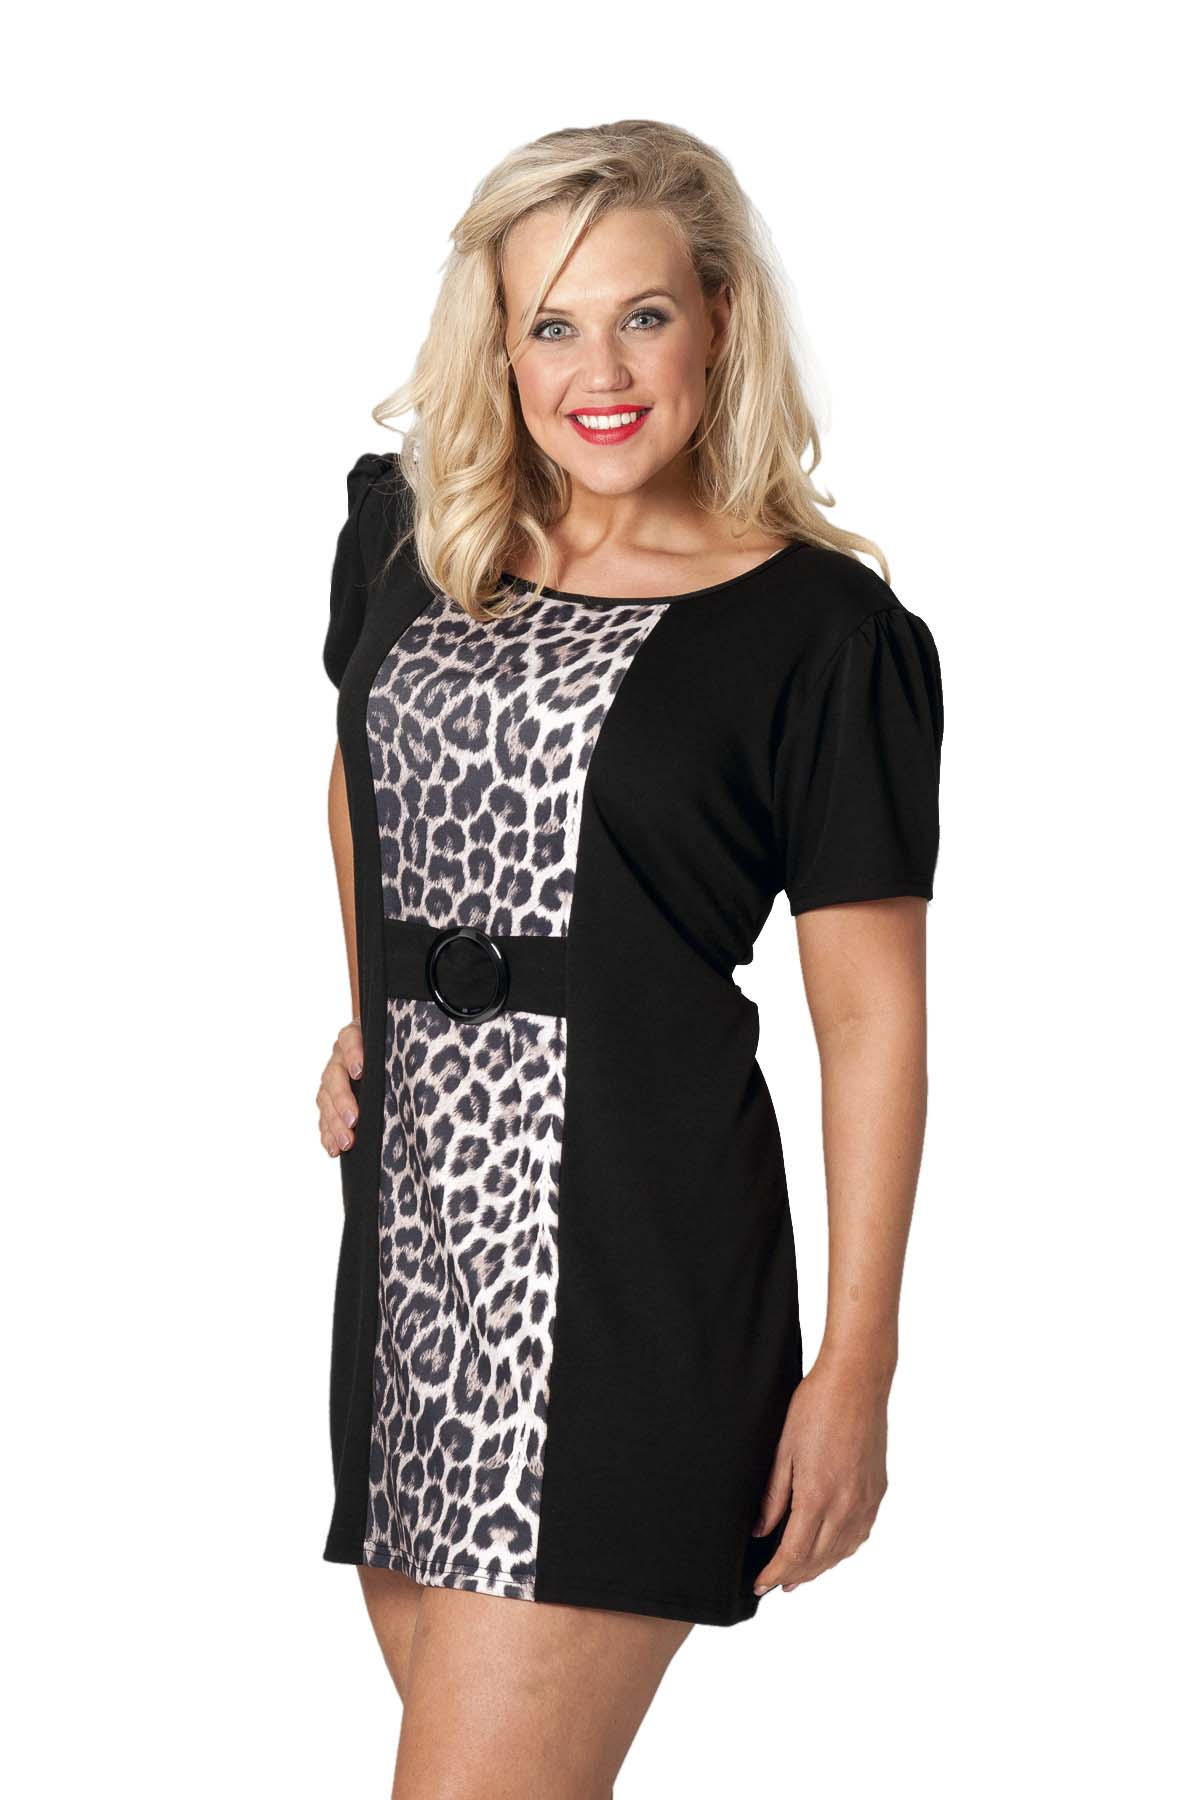 Leopard print clothing for women